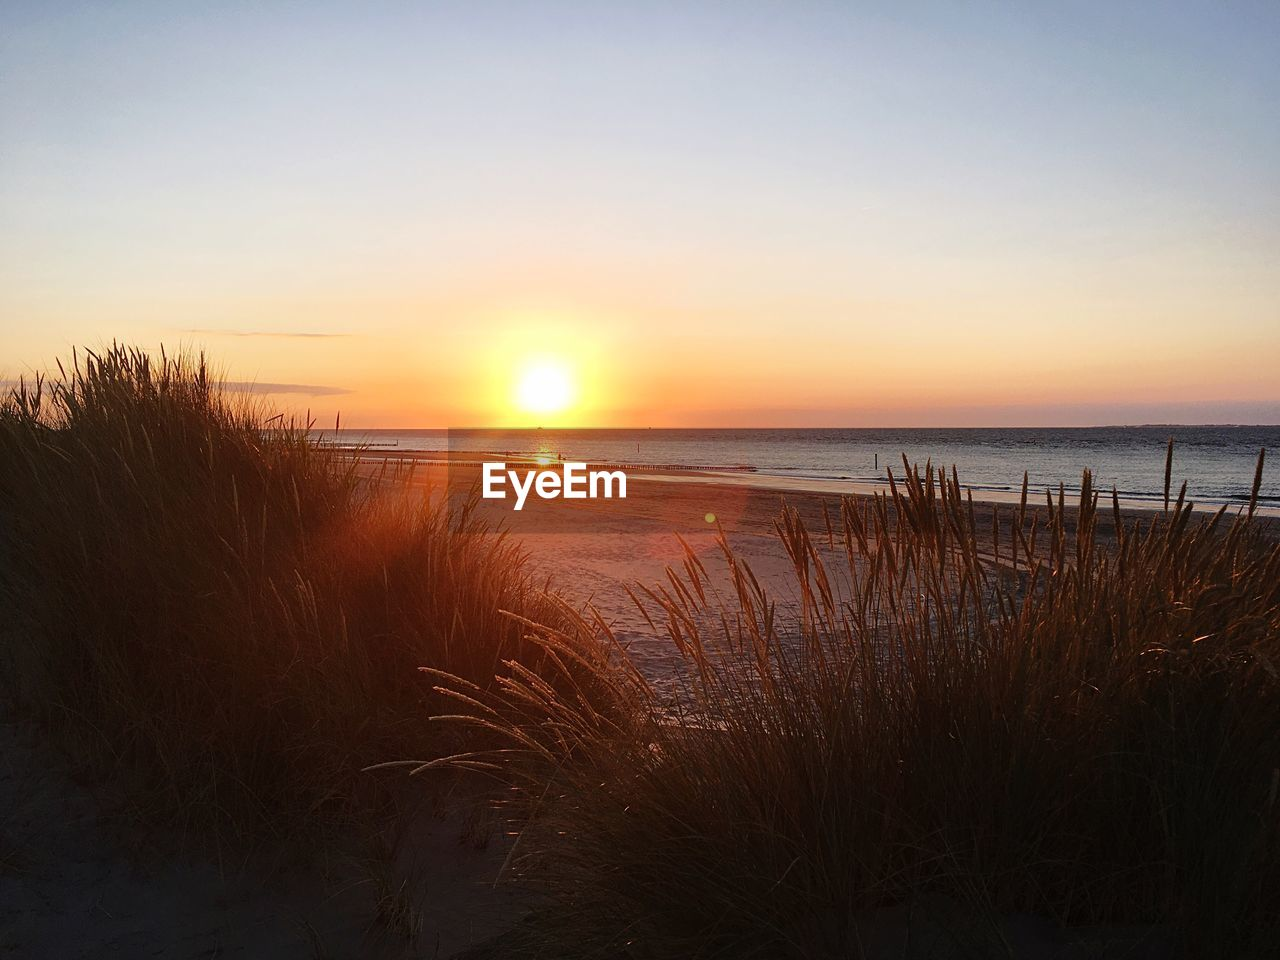 sunset, sky, water, scenics - nature, beauty in nature, tranquility, sea, tranquil scene, plant, beach, grass, land, horizon over water, nature, horizon, no people, sun, orange color, marram grass, outdoors, timothy grass